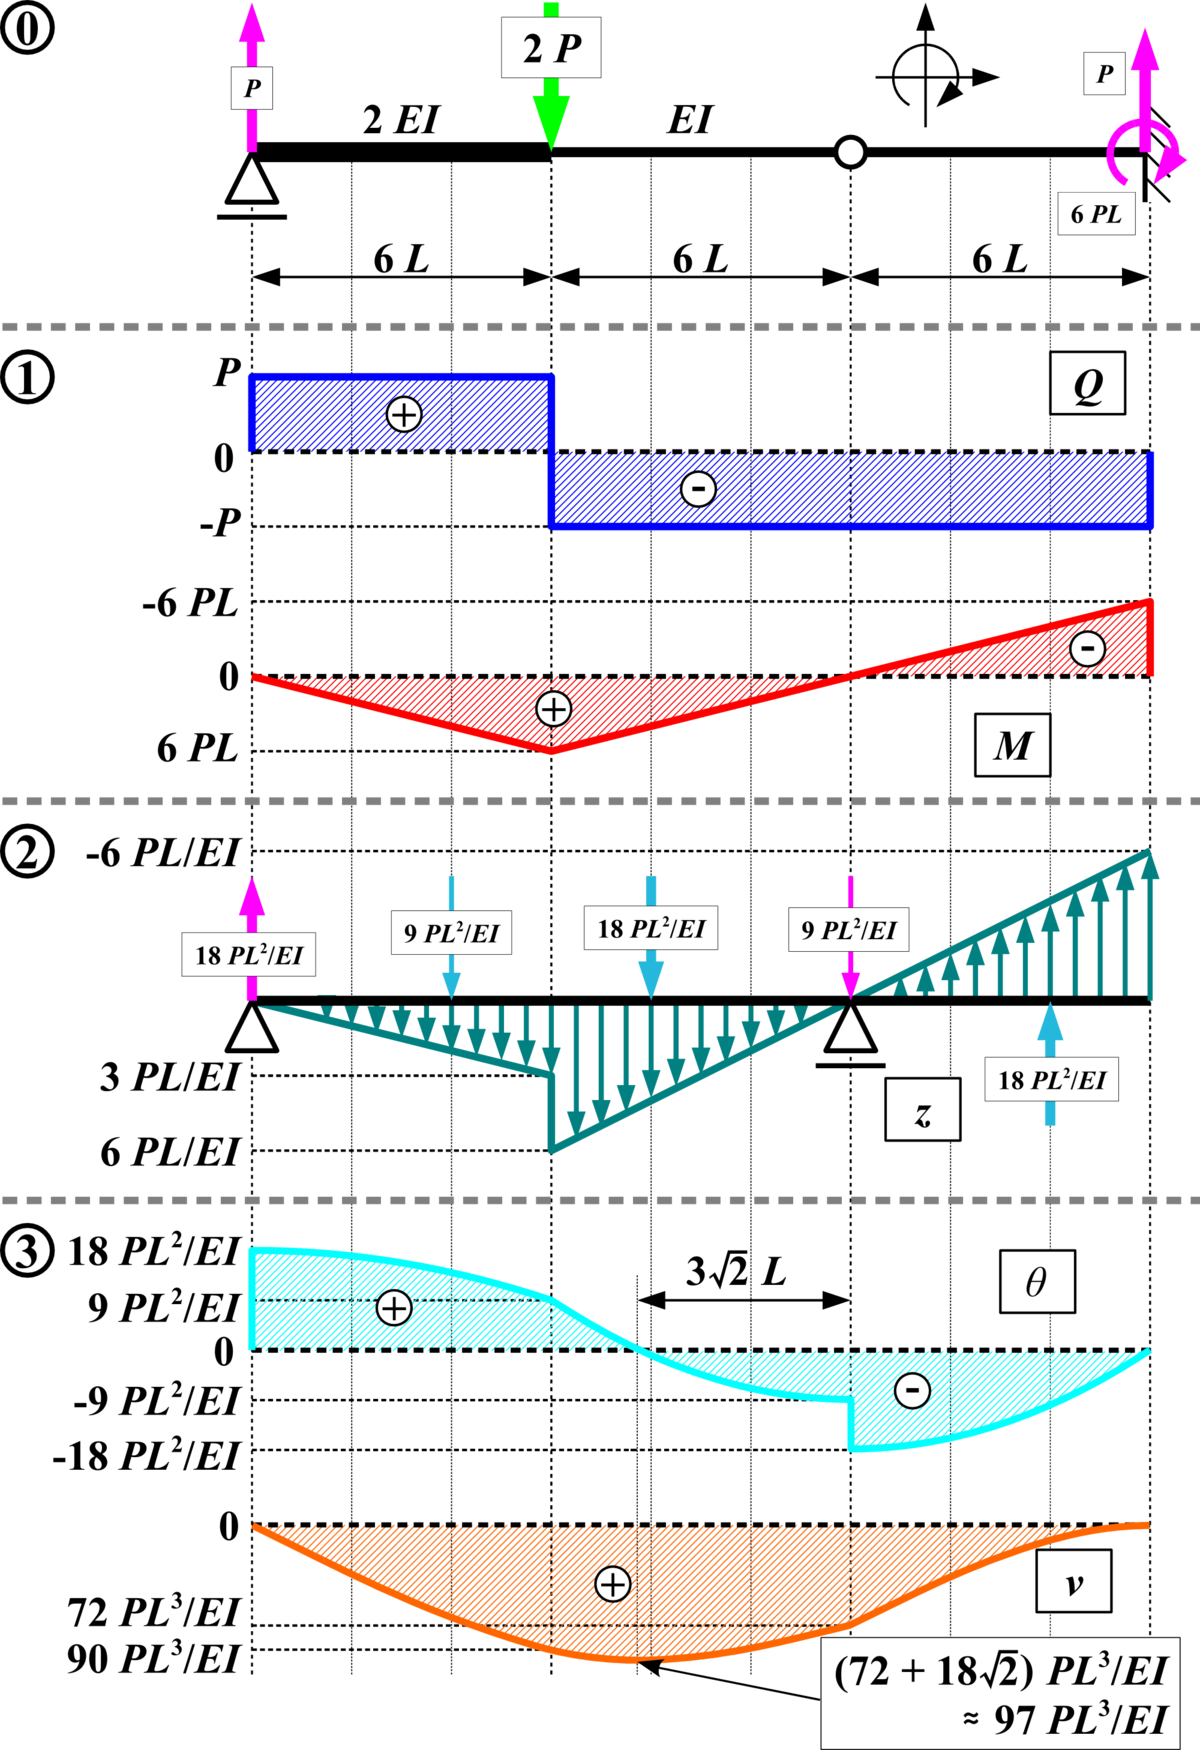 conjugate beam method wikipedia rh en wikipedia org Draw a Shear and Bending Moment Diagrams Cantilever Moment Diagram